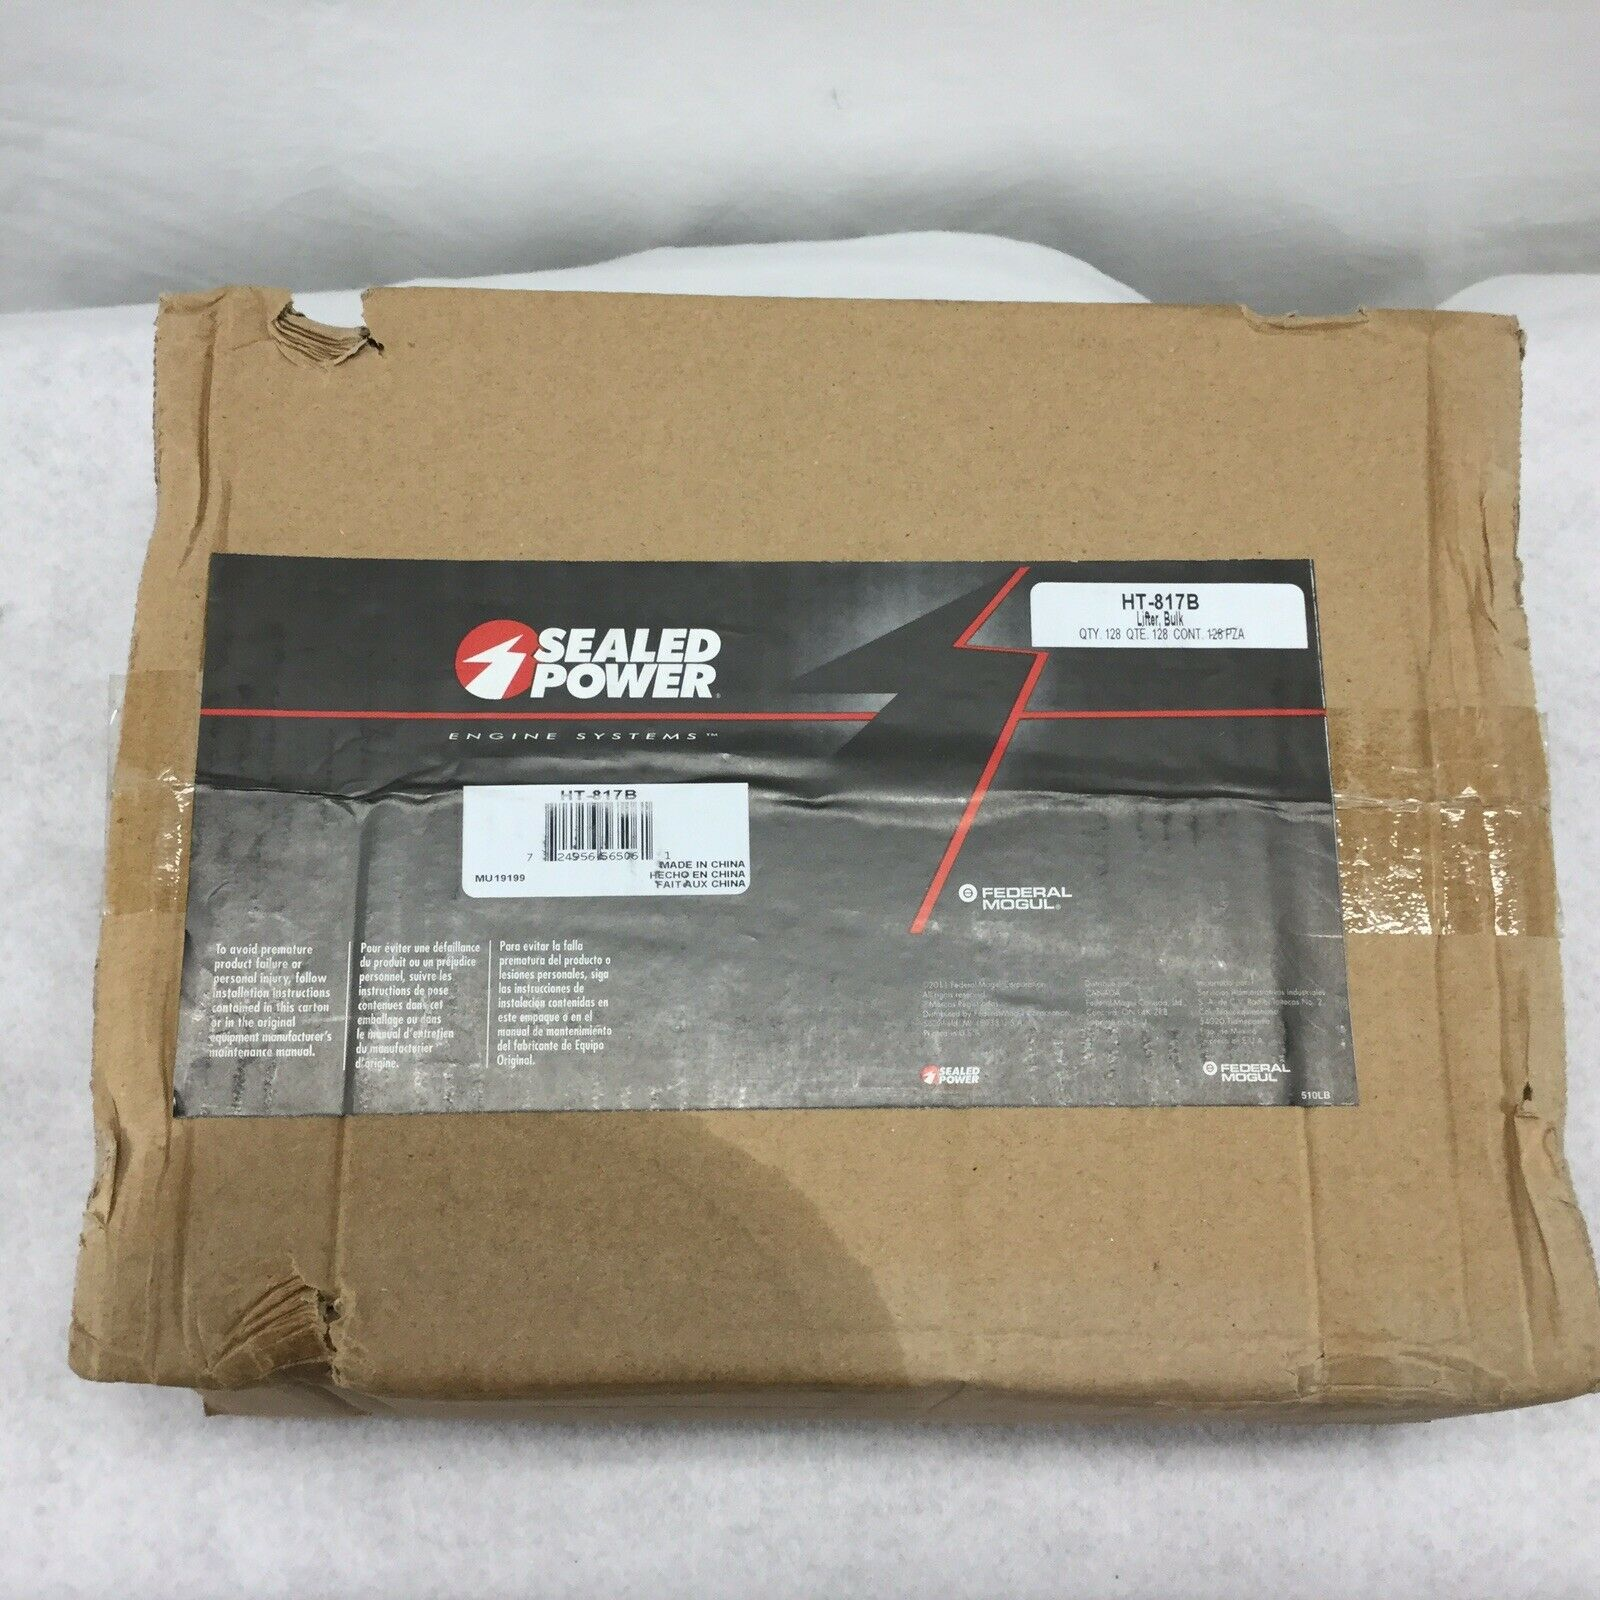 Sealed Power HT-817B (16) Hyd Flat Tappet Lifter fits Chevrolet SBC BBC 350 454 L817 TAPHA817